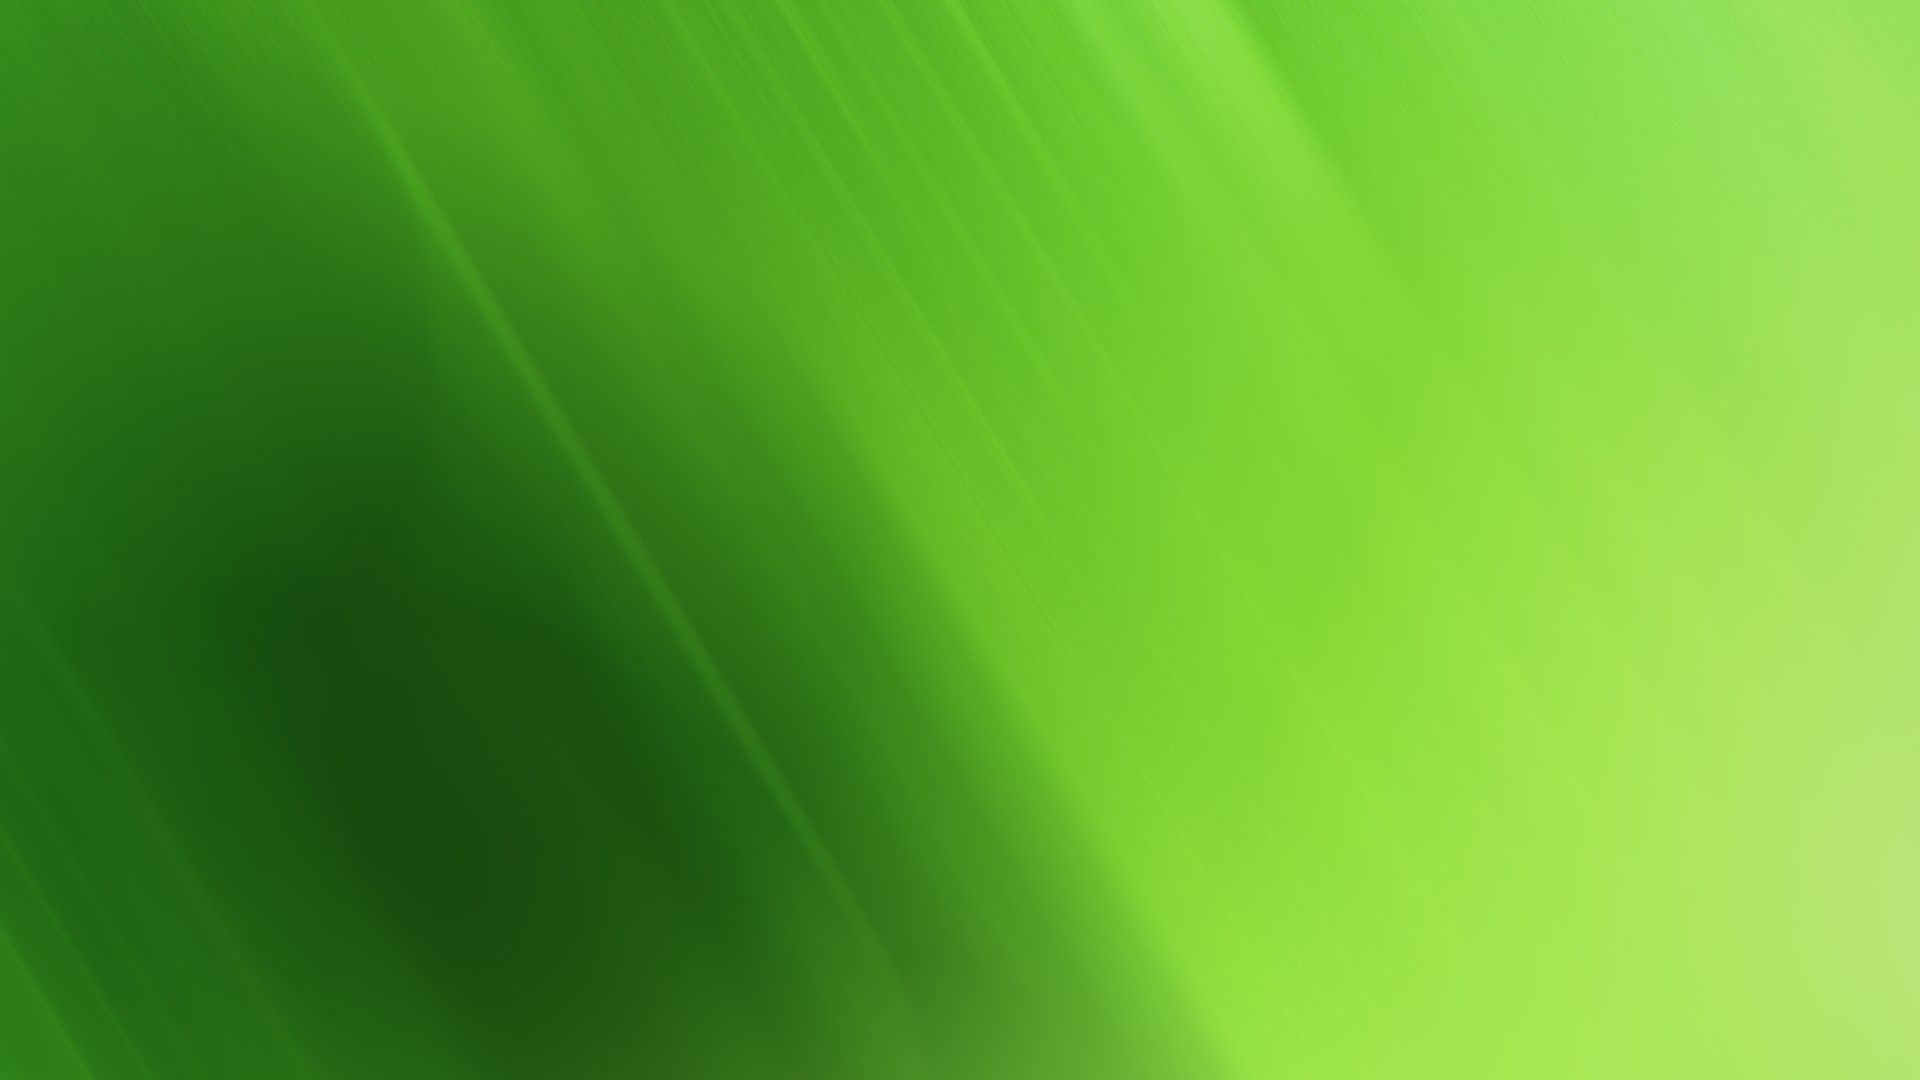 Free Download 1920x1080 Green Abstract Desktop Pc And Mac Wallpaper